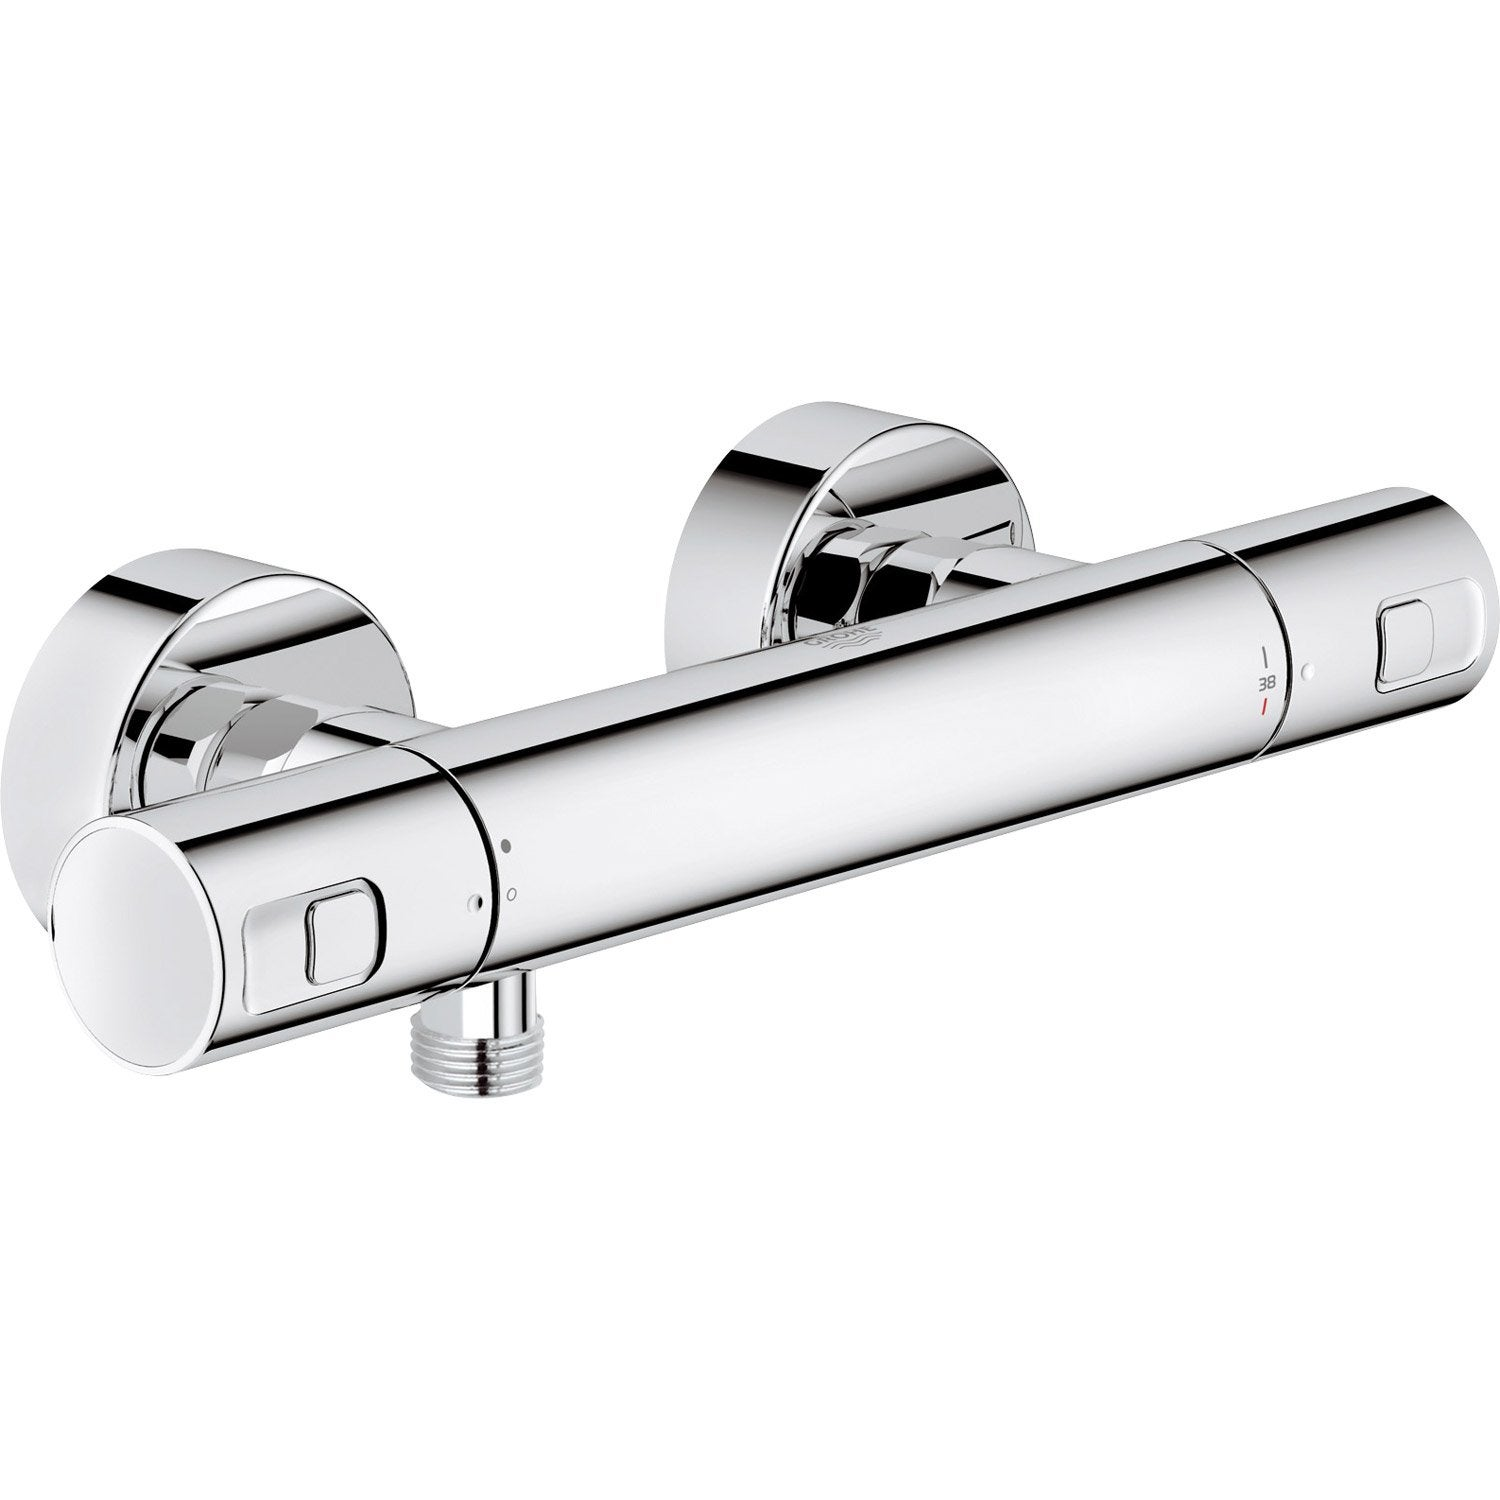 Mitigeur thermostatique de douche chrom grohe precision for Mitigeur grohe leroy merlin